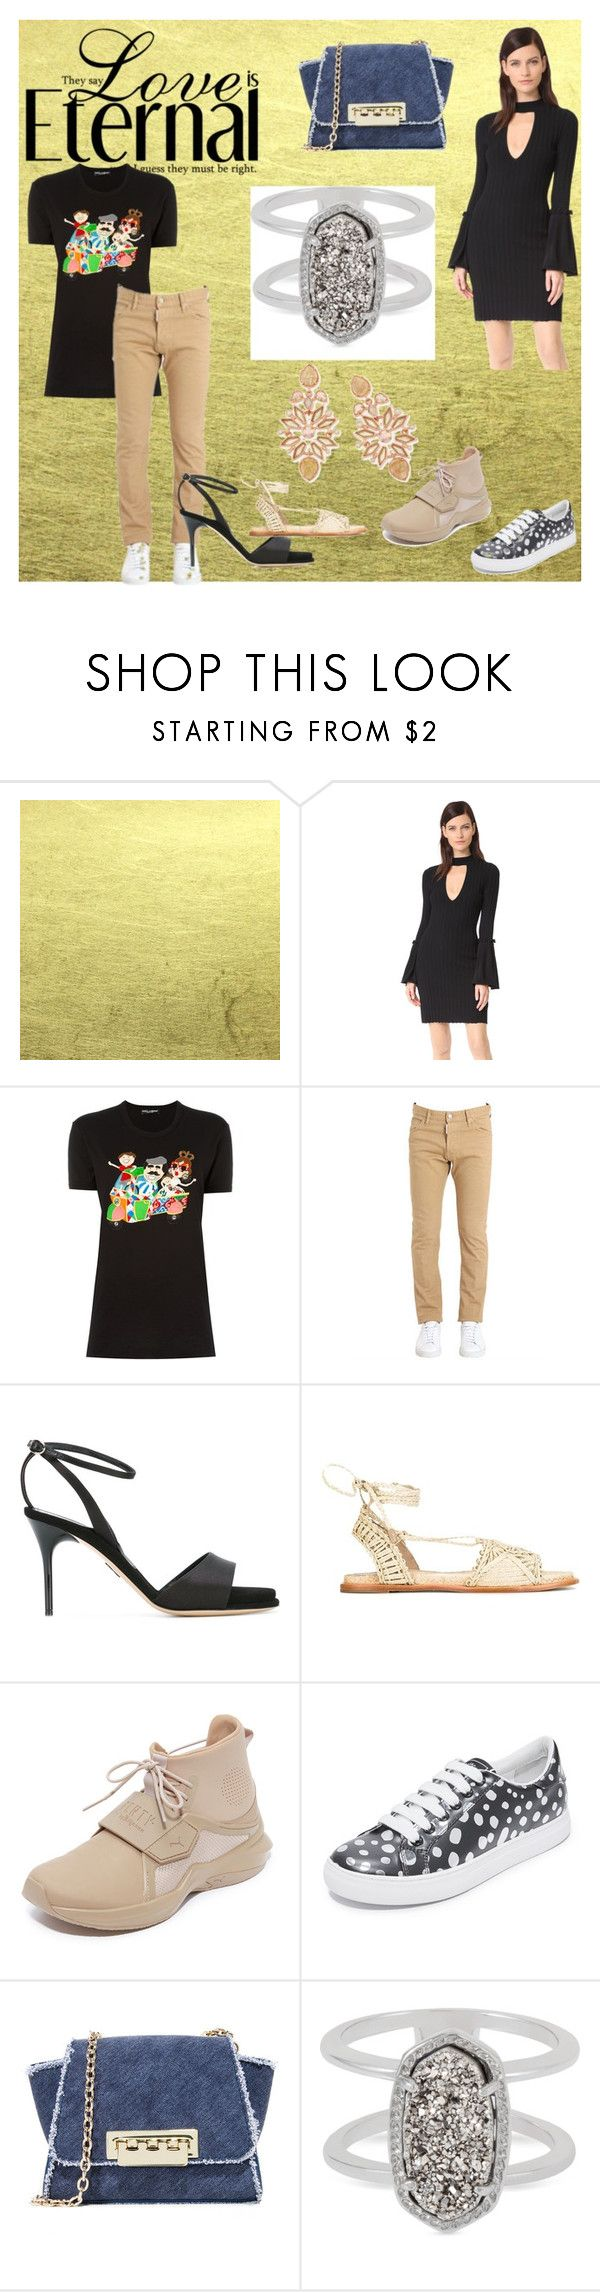 """Black is Fashion"" by mkrish ❤ liked on Polyvore featuring C/MEO COLLECTIVE, Dolce&Gabbana, Dsquared2, Paul Andrew, Puma, Marc Jacobs, ZAC Zac Posen and Kendra Scott"